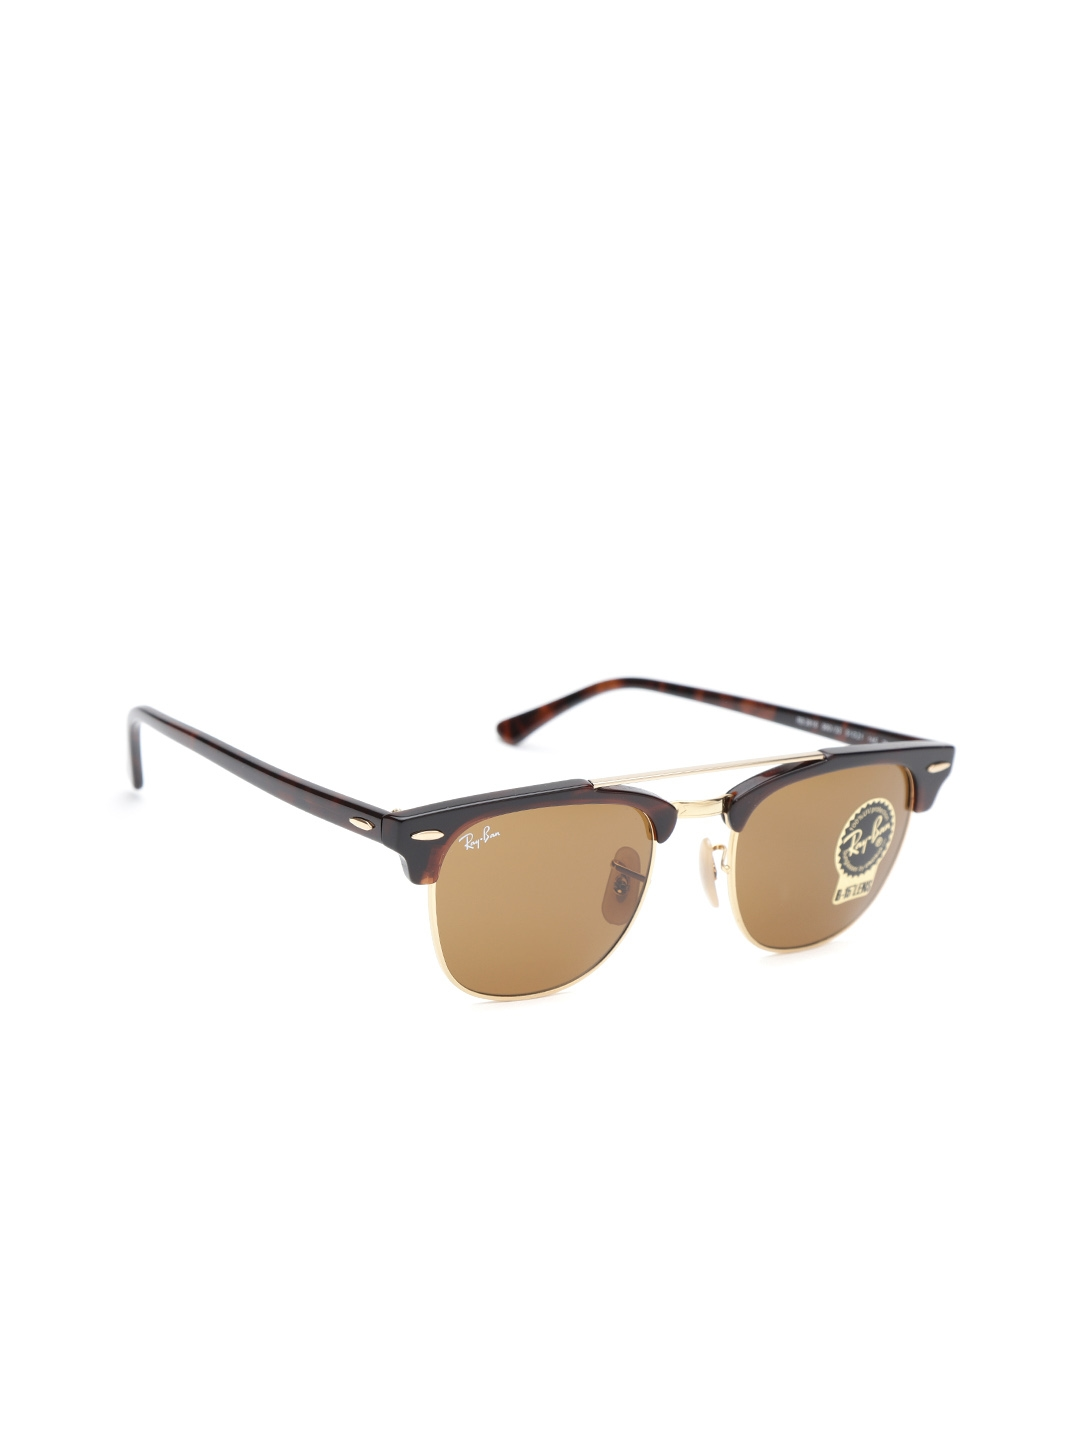 282670d8f72 Buy Ray Ban Unisex Clubmaster Sunglasses 0RB3816990 3351 ...